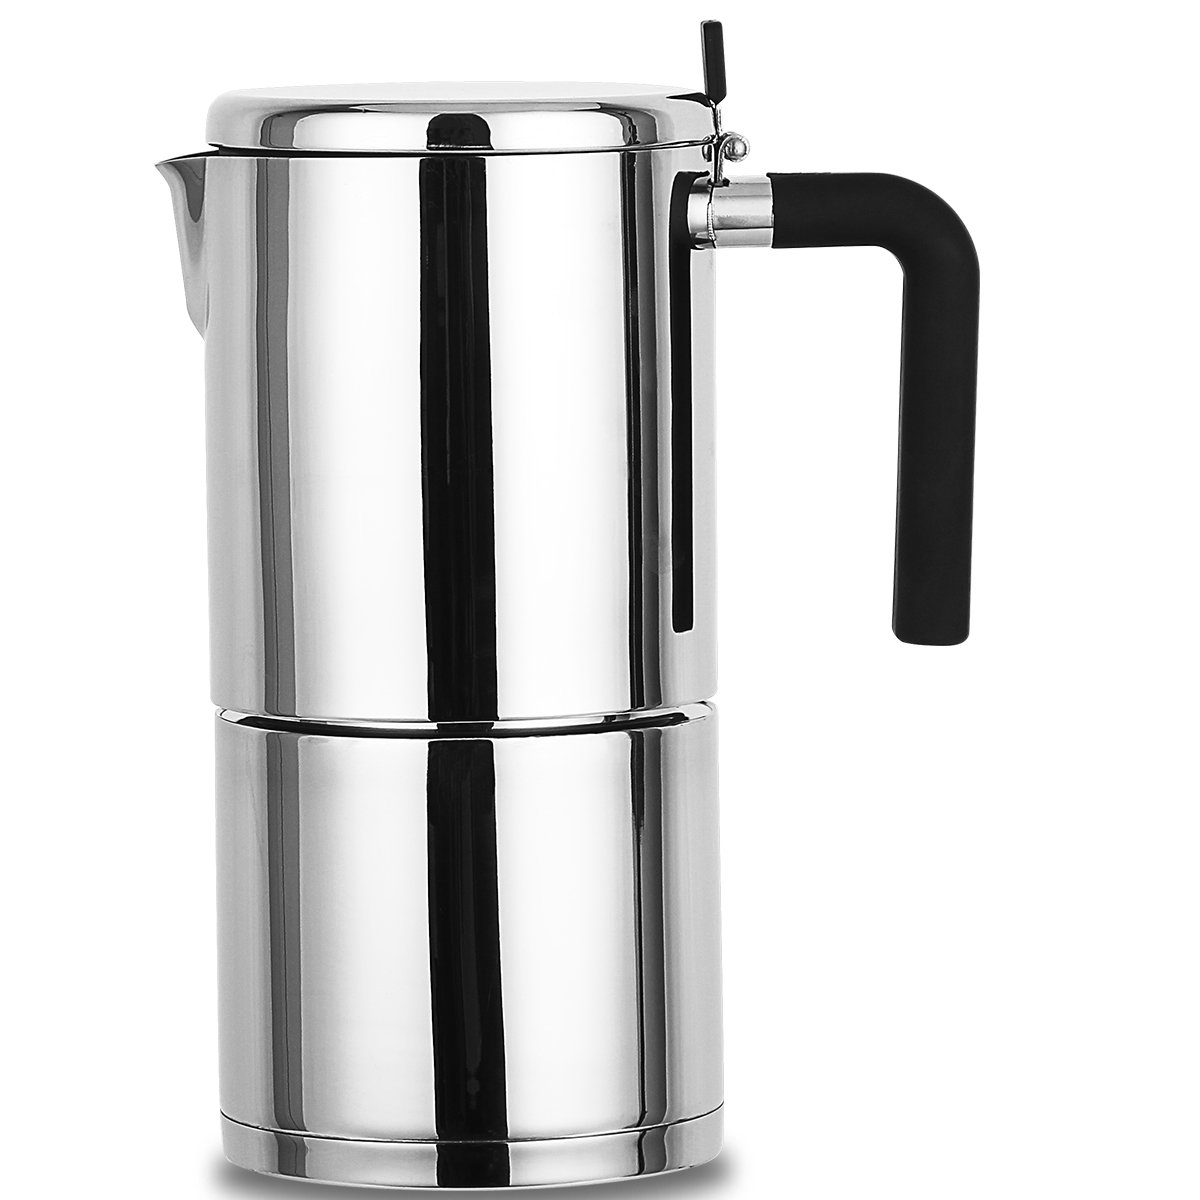 Stovetop Espresso Maker Stainless Steel 10 Cup XIHAO Silver Italian Moka Coffee Pot by XIHAO